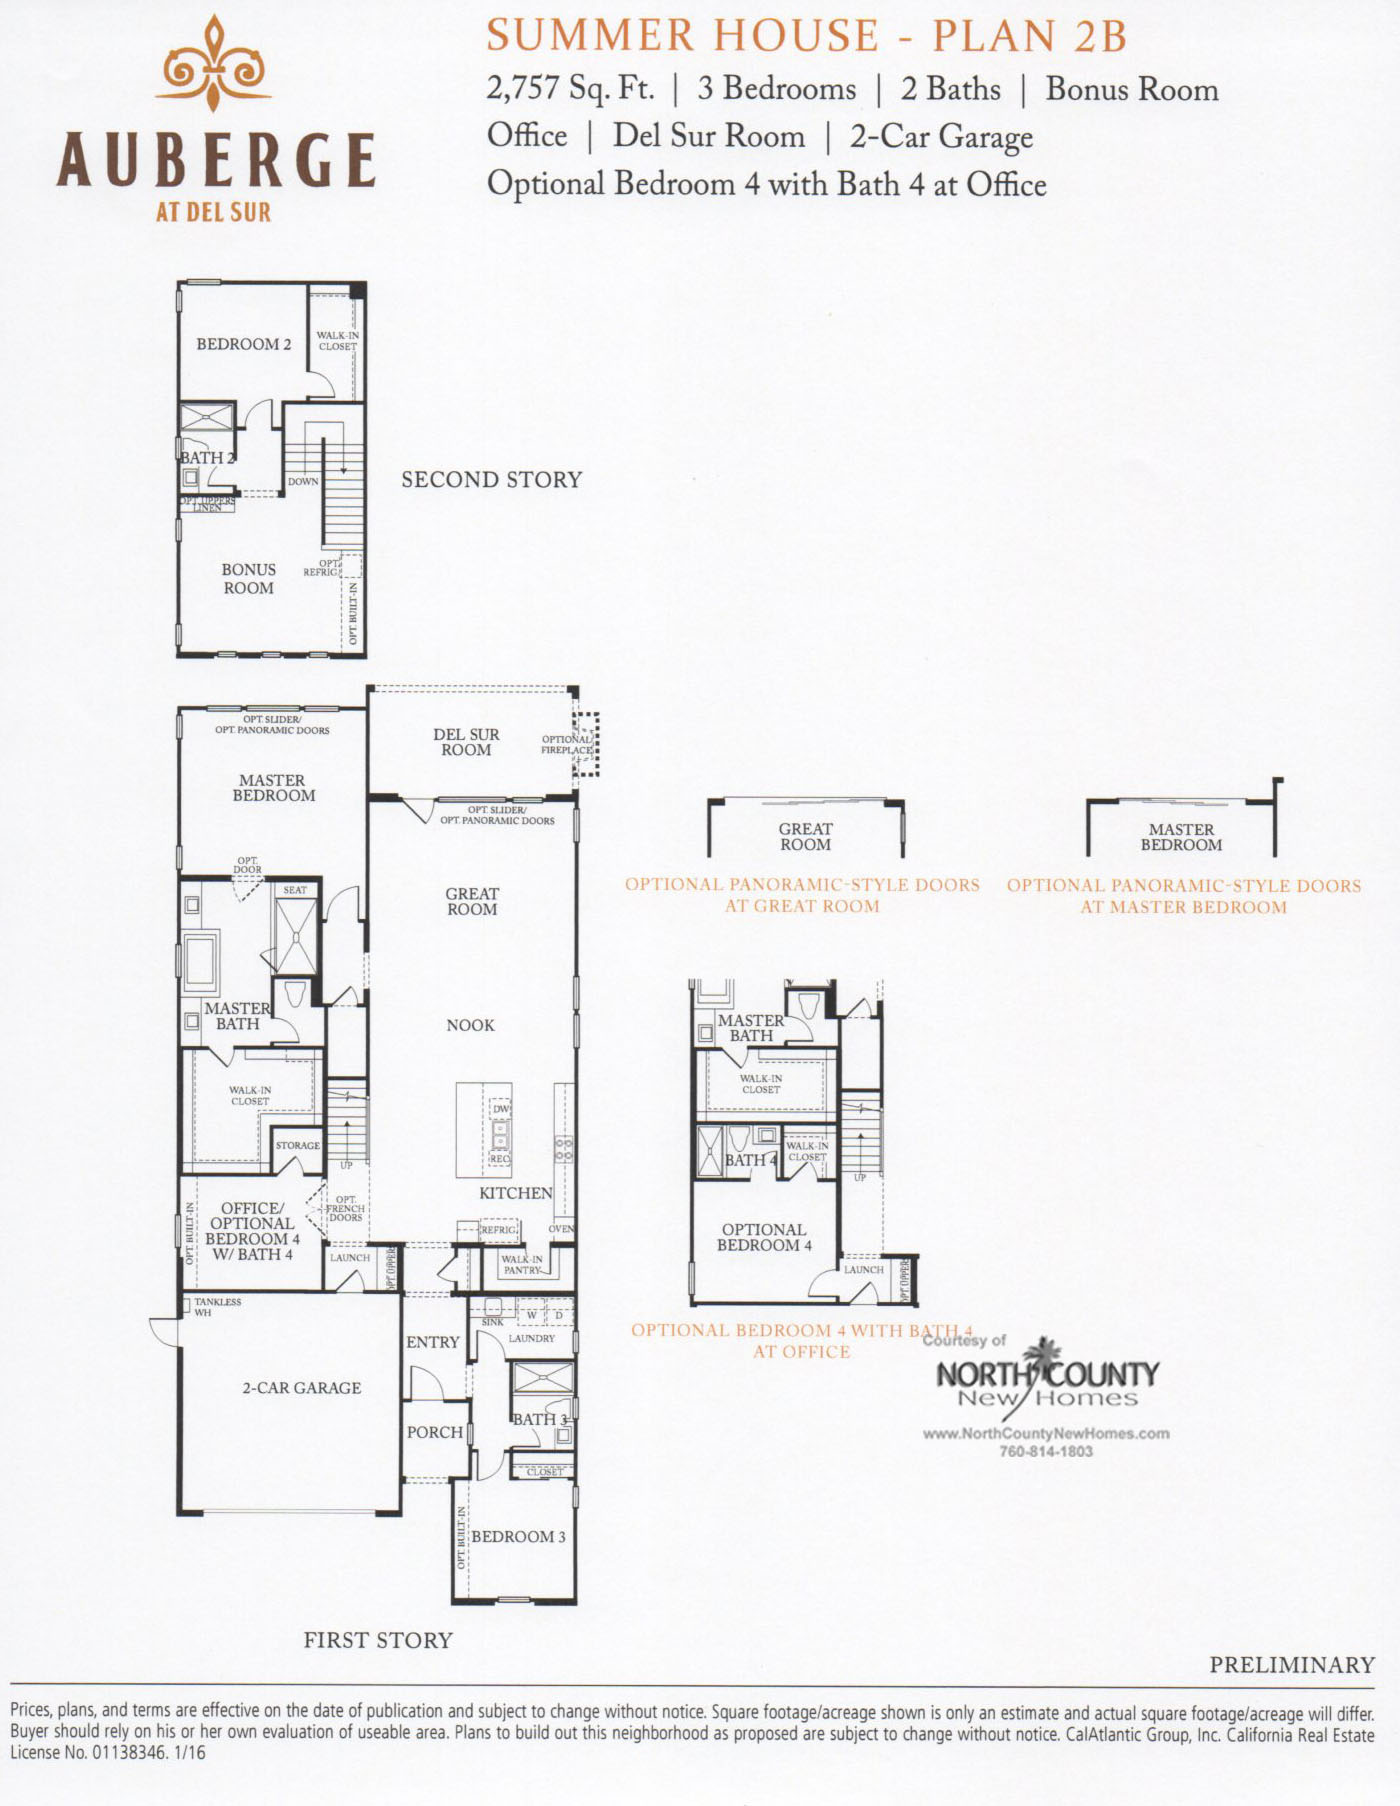 auberge at del sur summer house floor plans north county